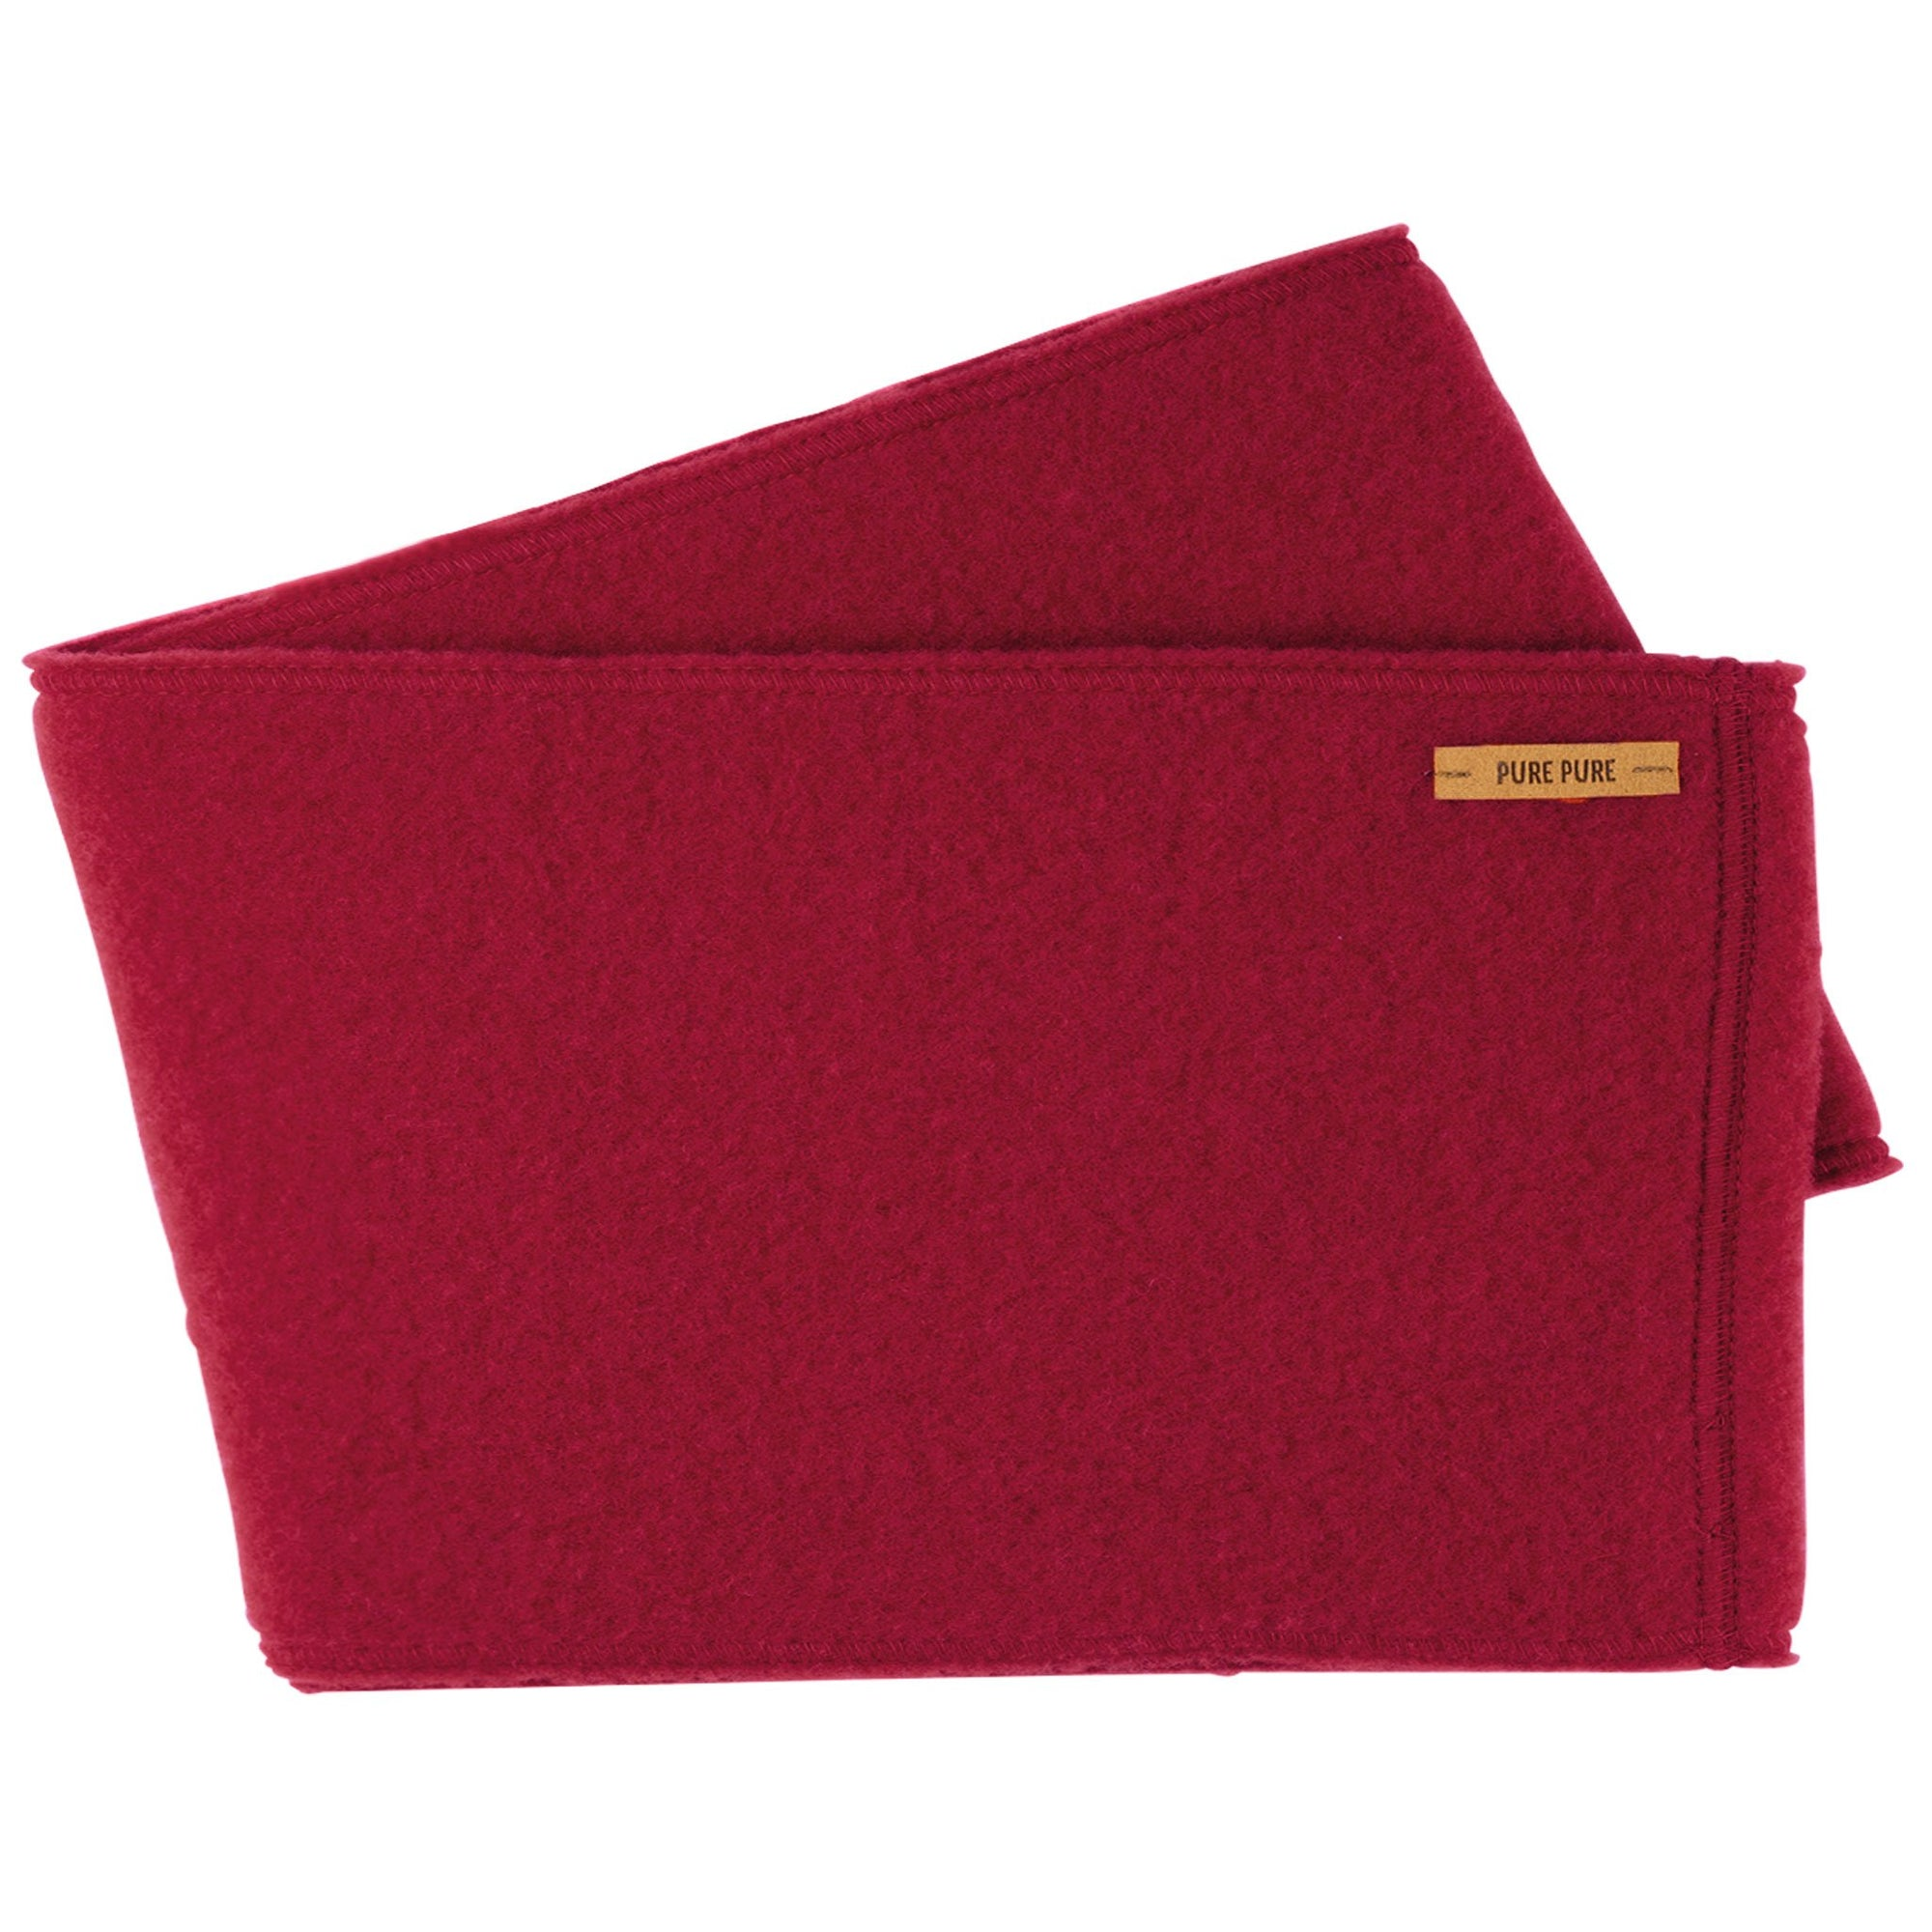 Neckwarmer femei Pure Pure fleece lână organica - Biking Red-Pure Pure-HipHip.ro